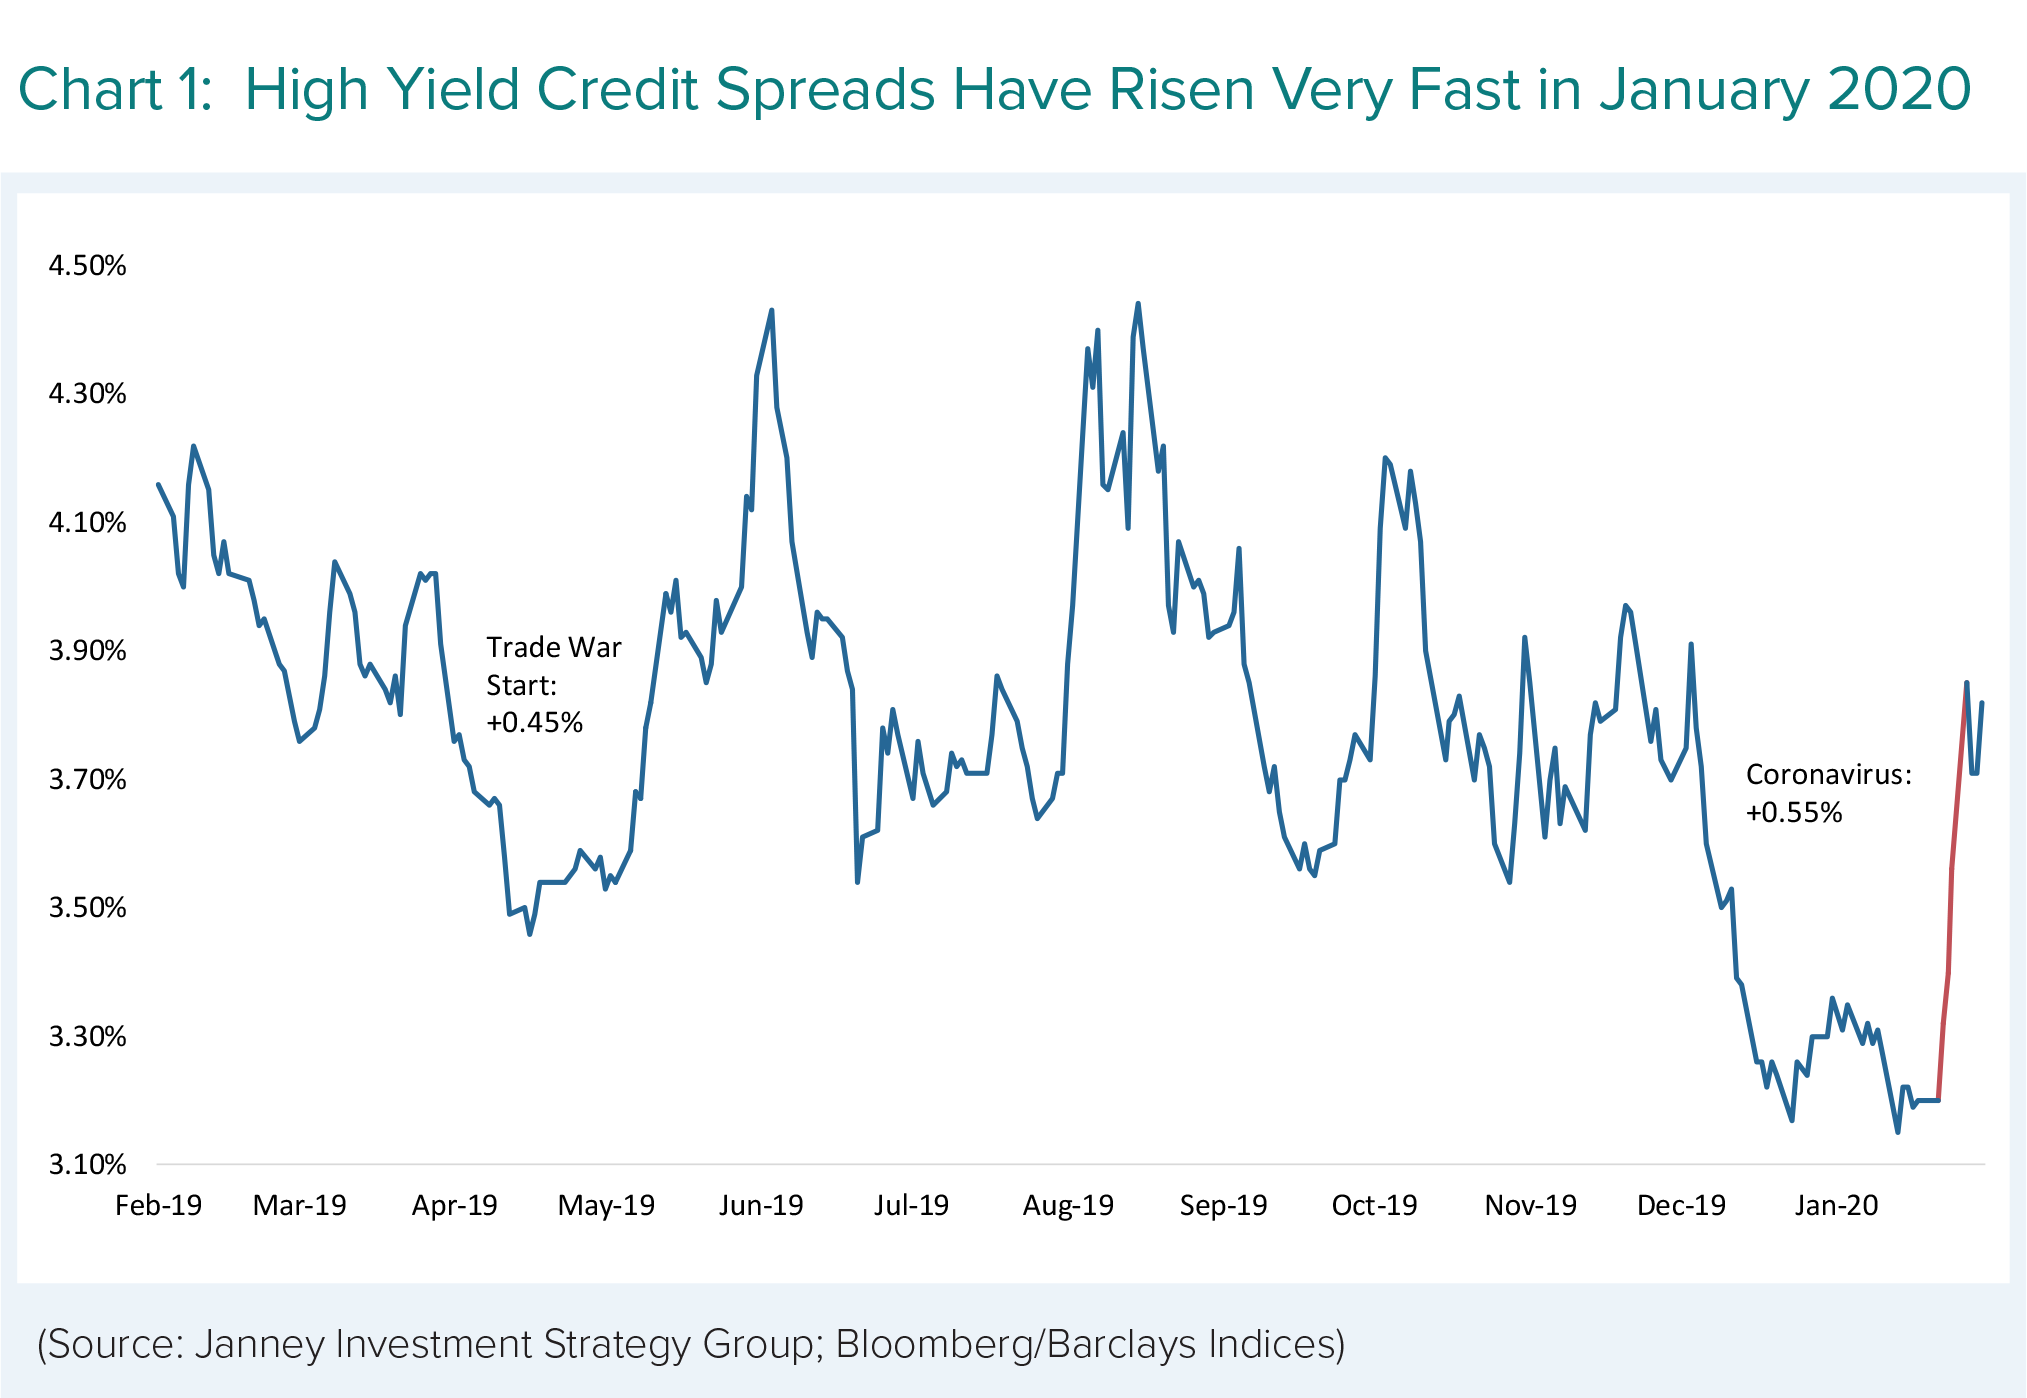 High Yield Credit Spreads Have Risen Very Fast in January 2020